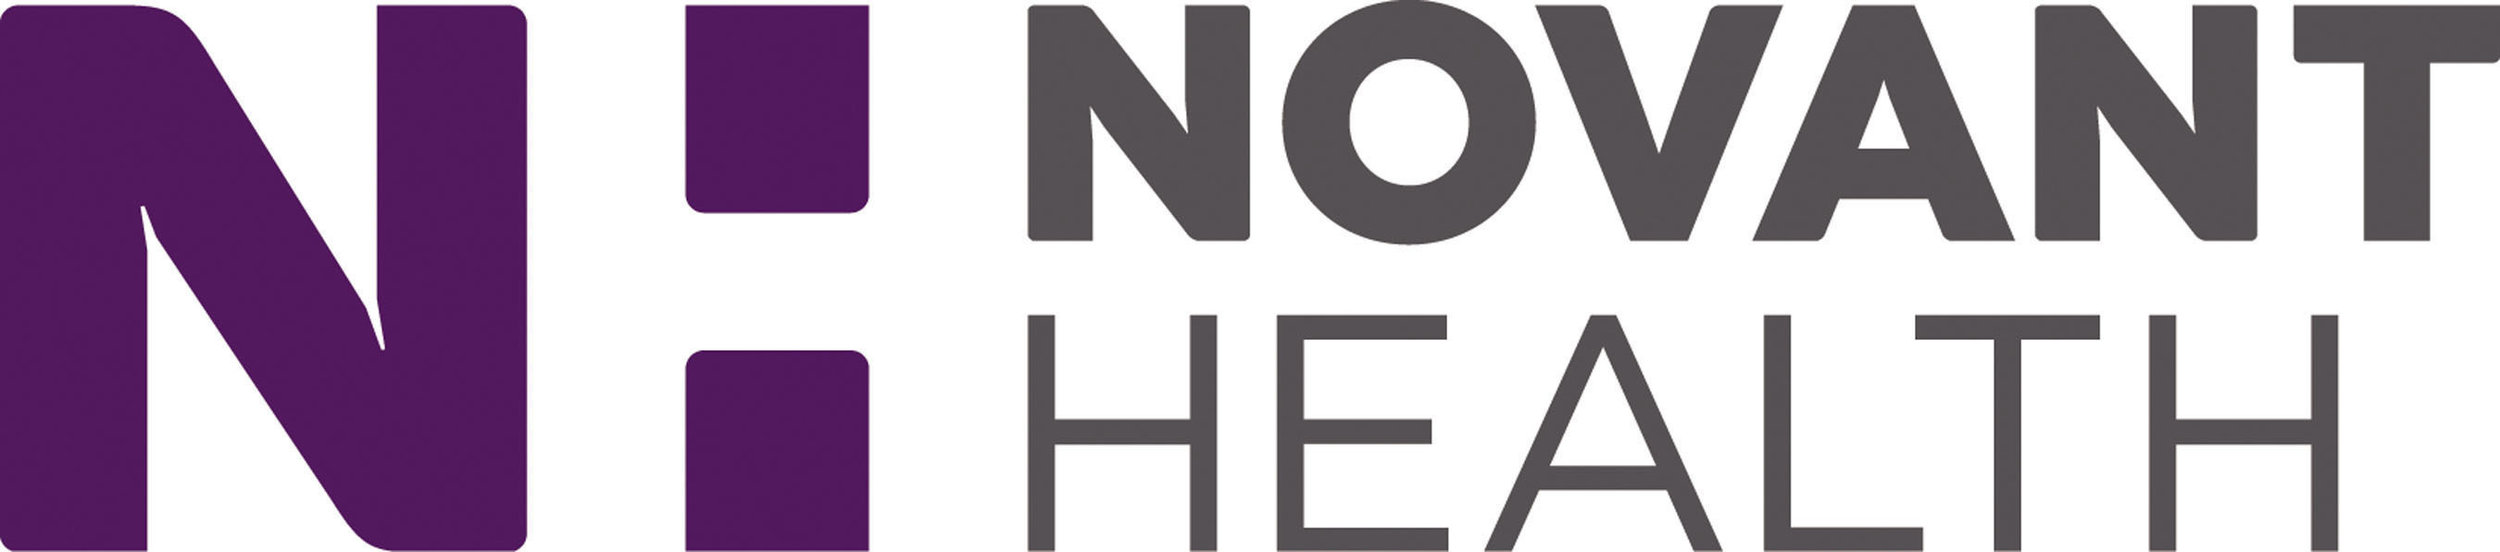 NovantHealth .jpeg